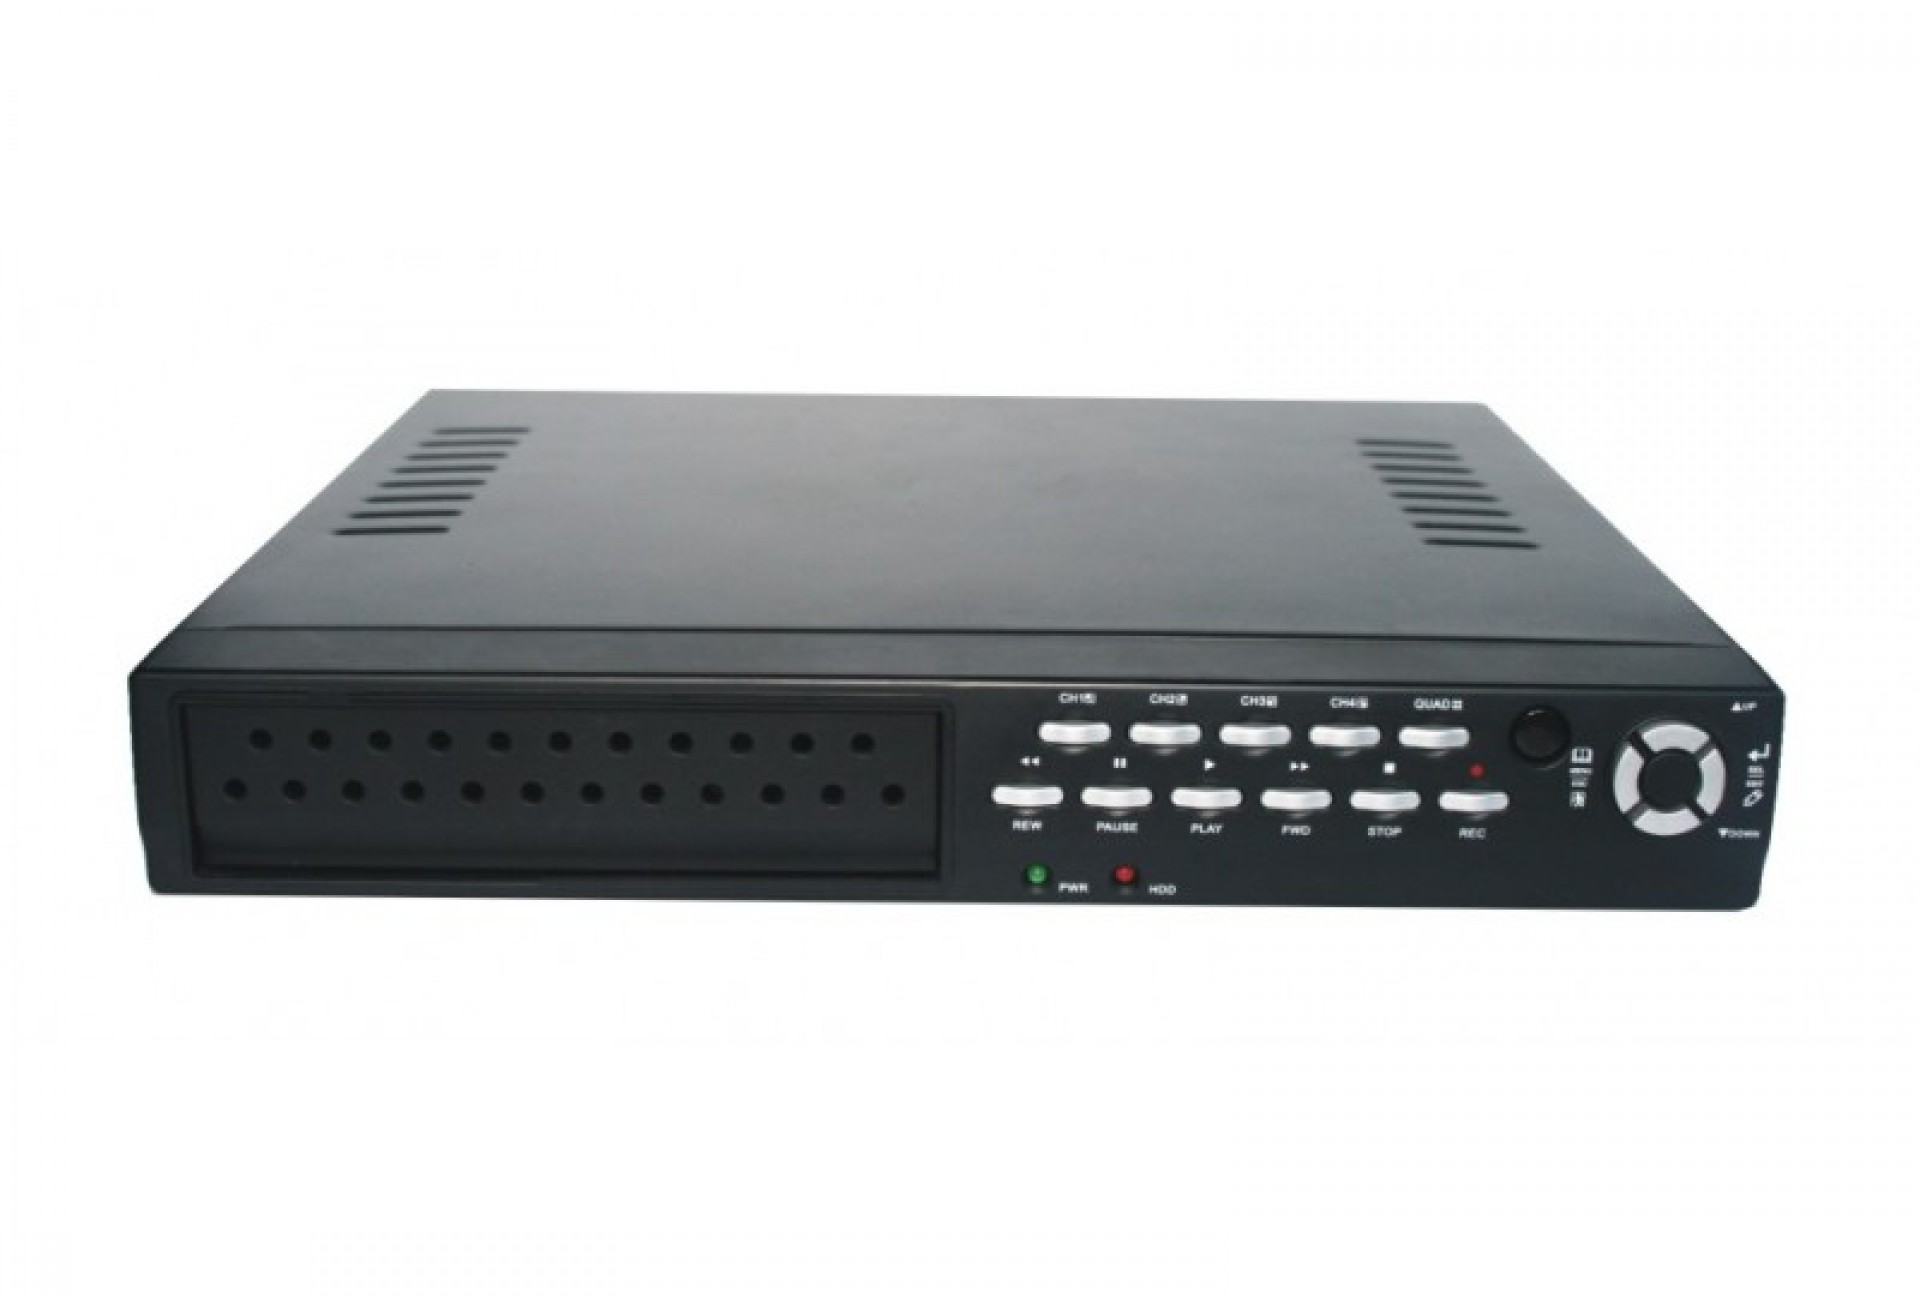 JB SECURITY DVR 4MP4